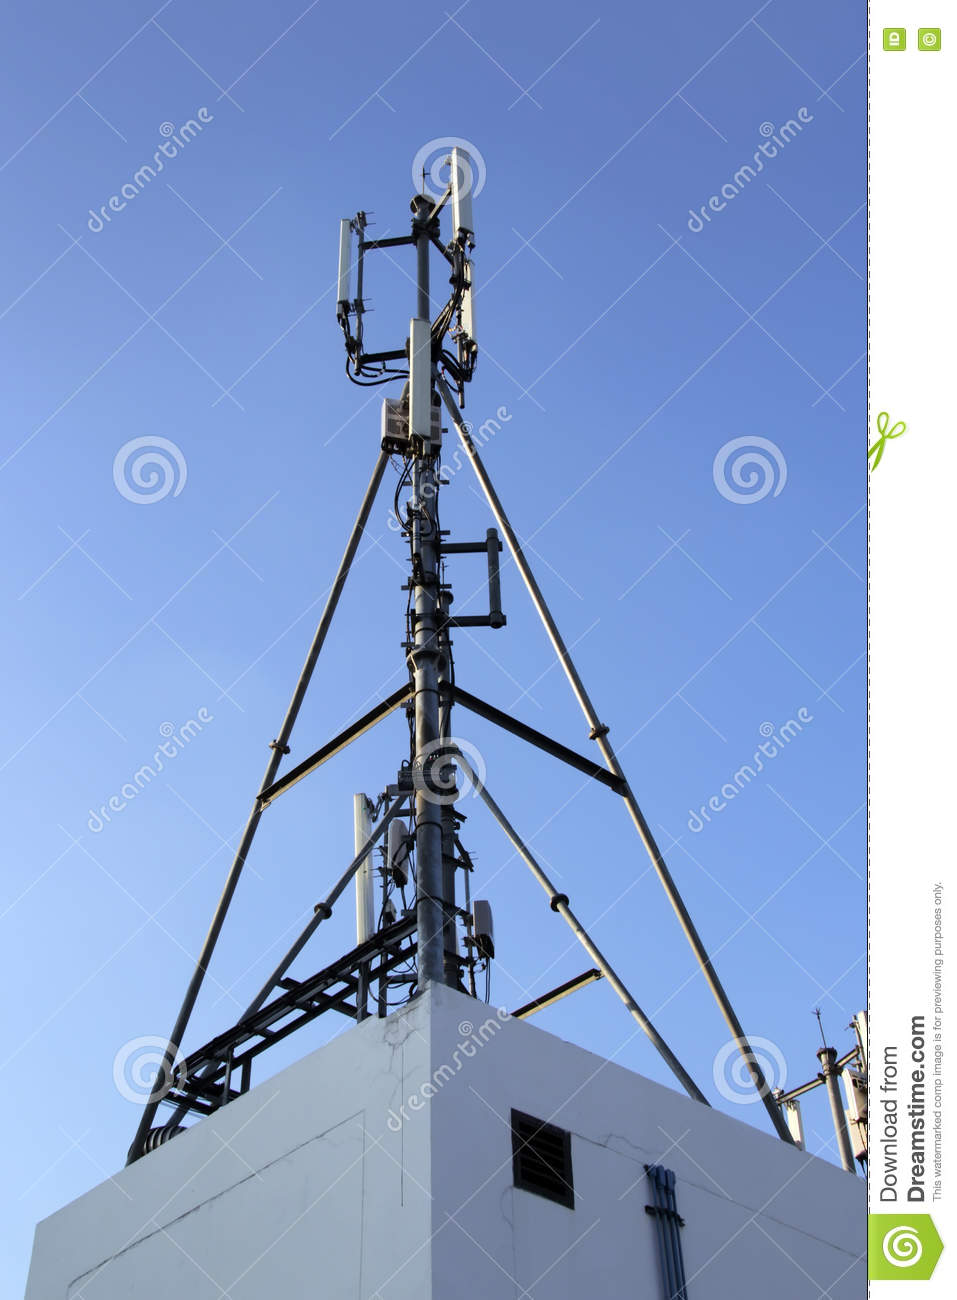 4G Cell Site, Radio Tower Or Mobile Phone Base Station Stock